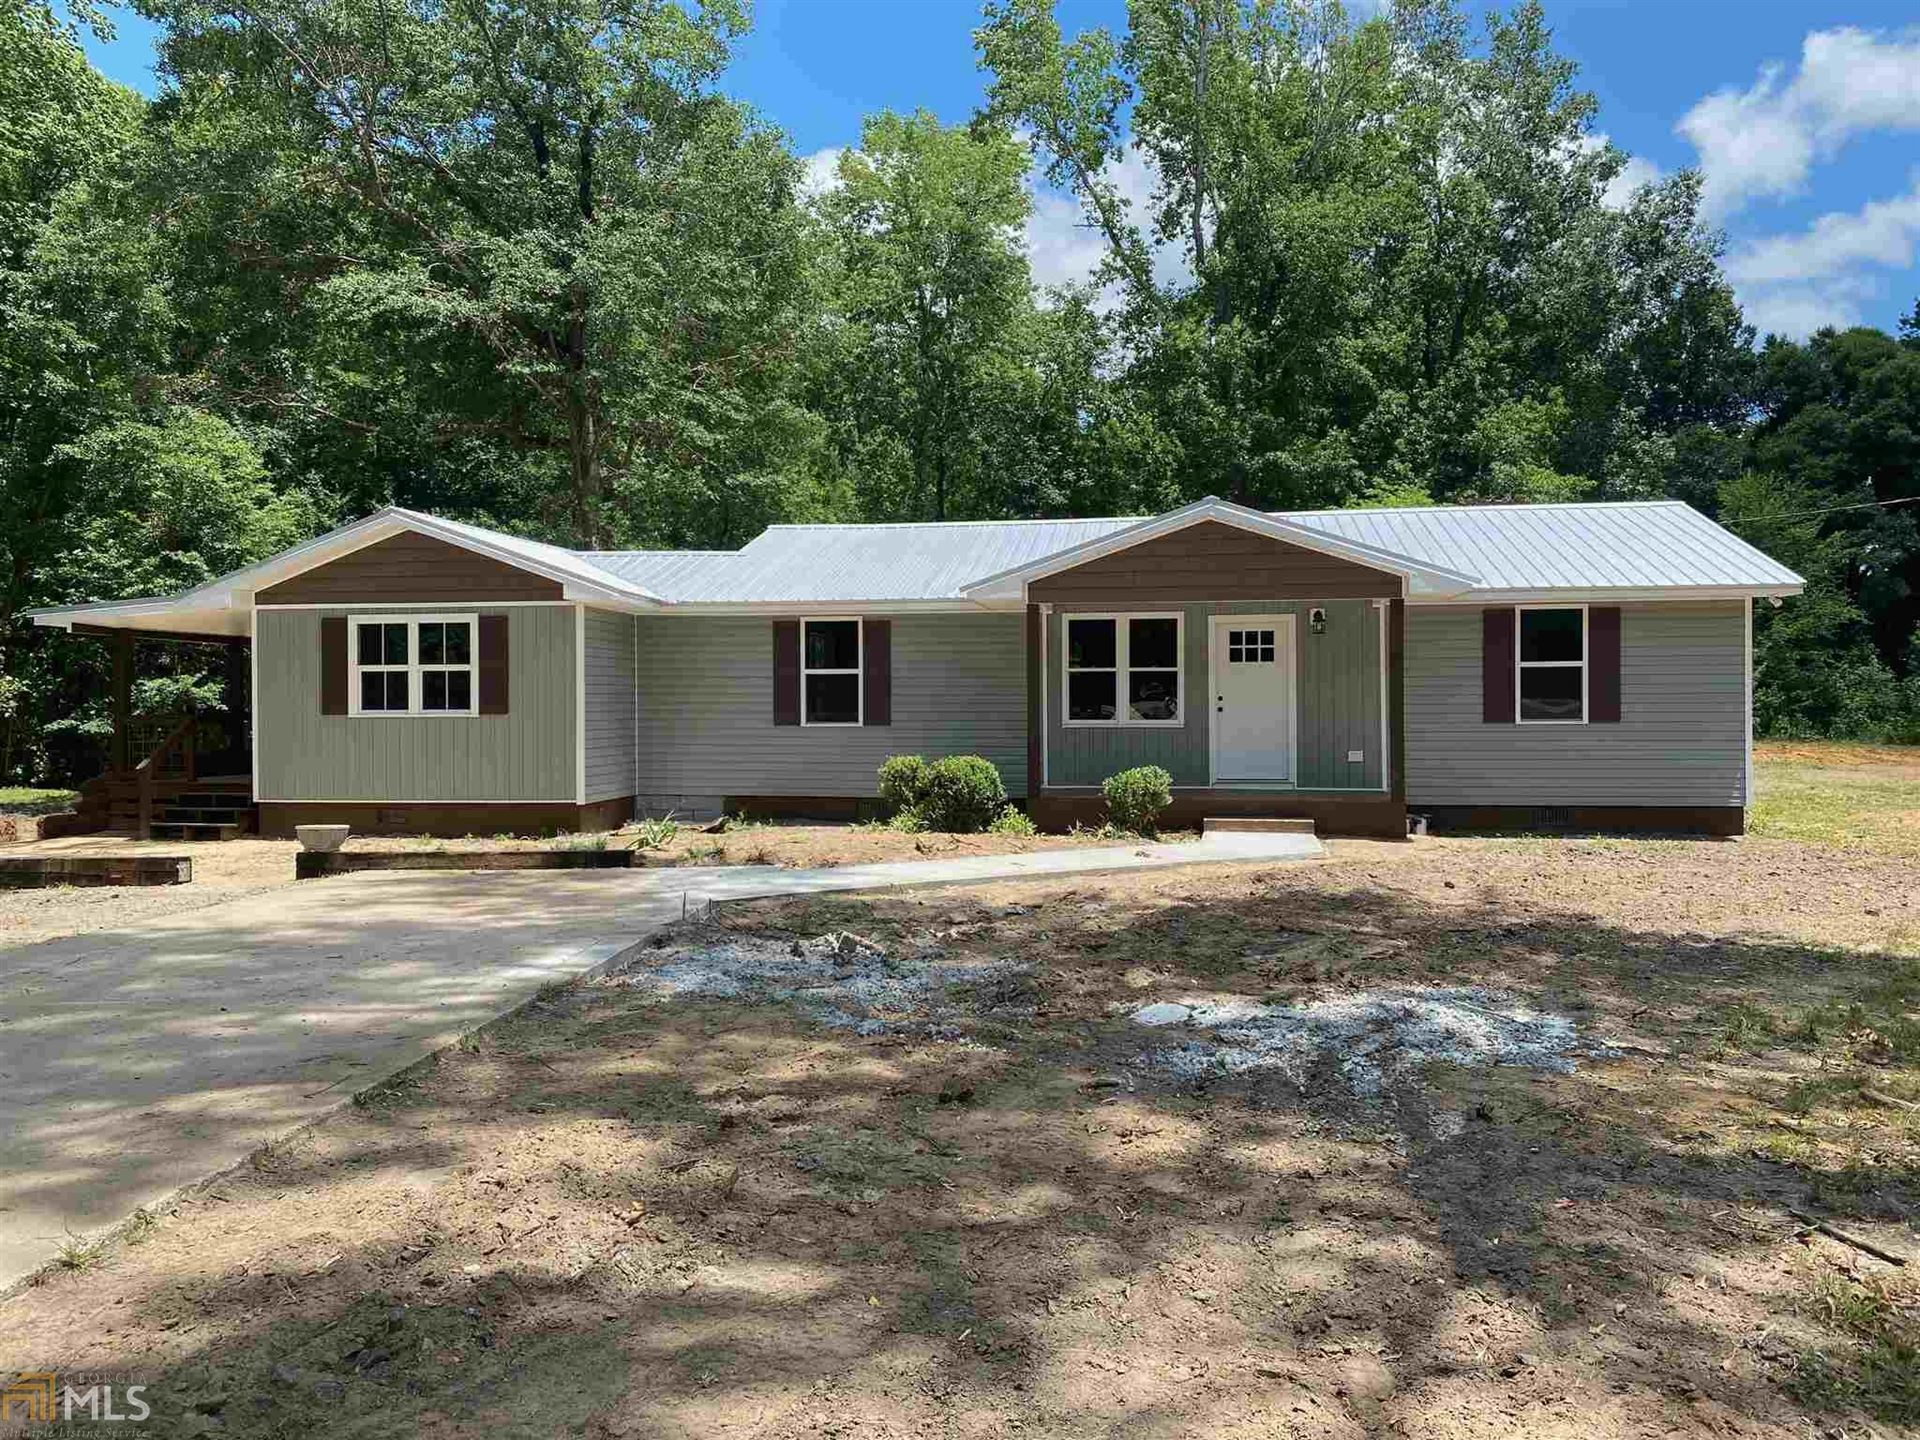 Photo of 700 Henderson Grv, Sandersville, GA 31082 (MLS # 8809689)